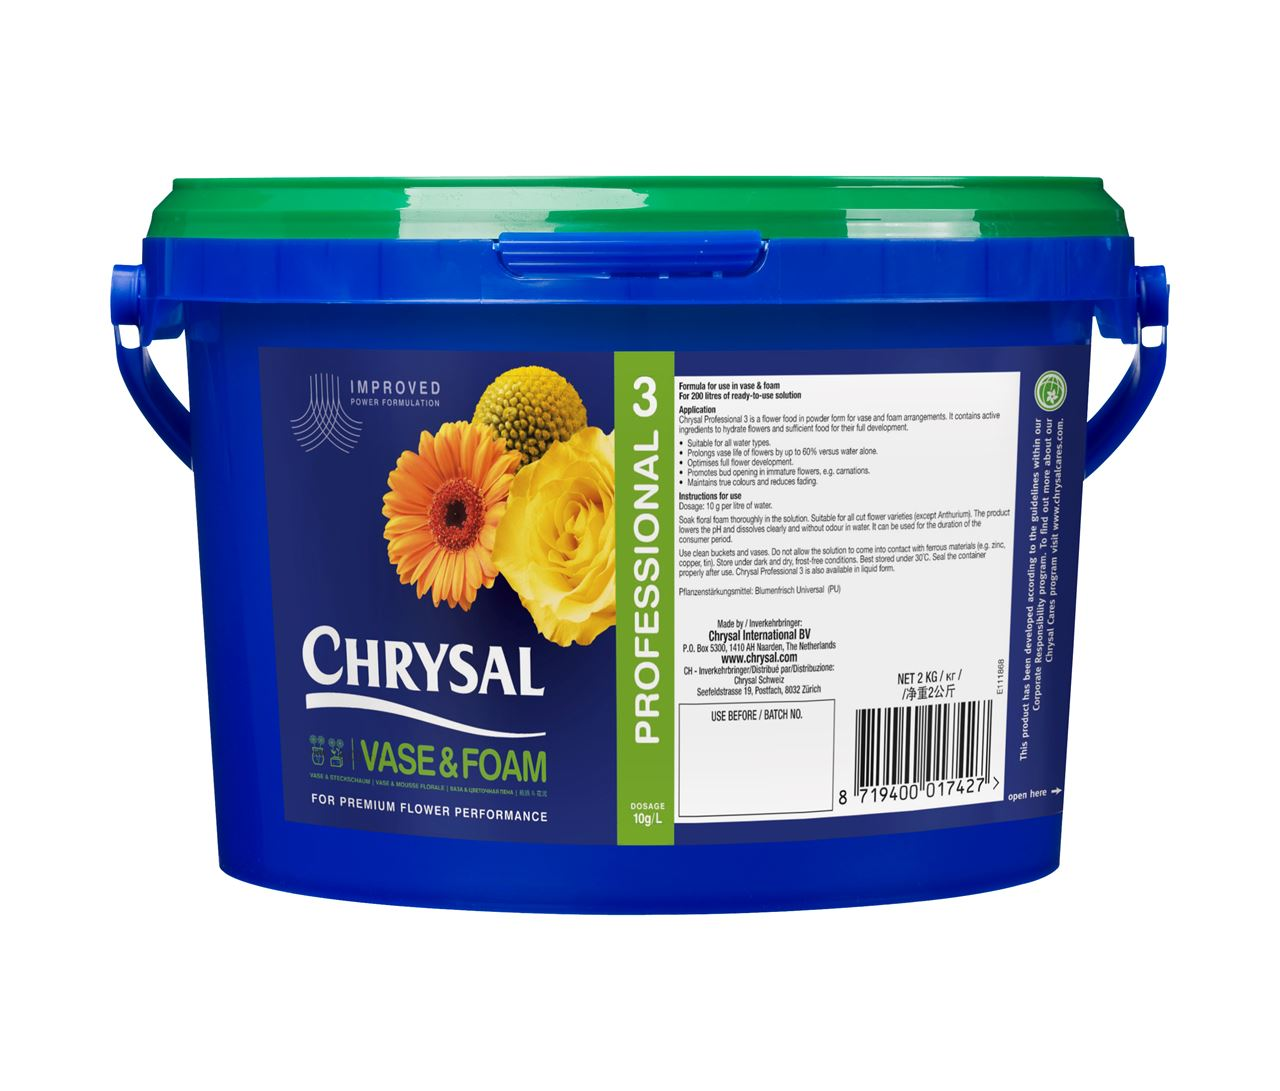 Chrysal professional 3 flower food bucket chrysal international chrysal professional 3 flower food bucket reviewsmspy